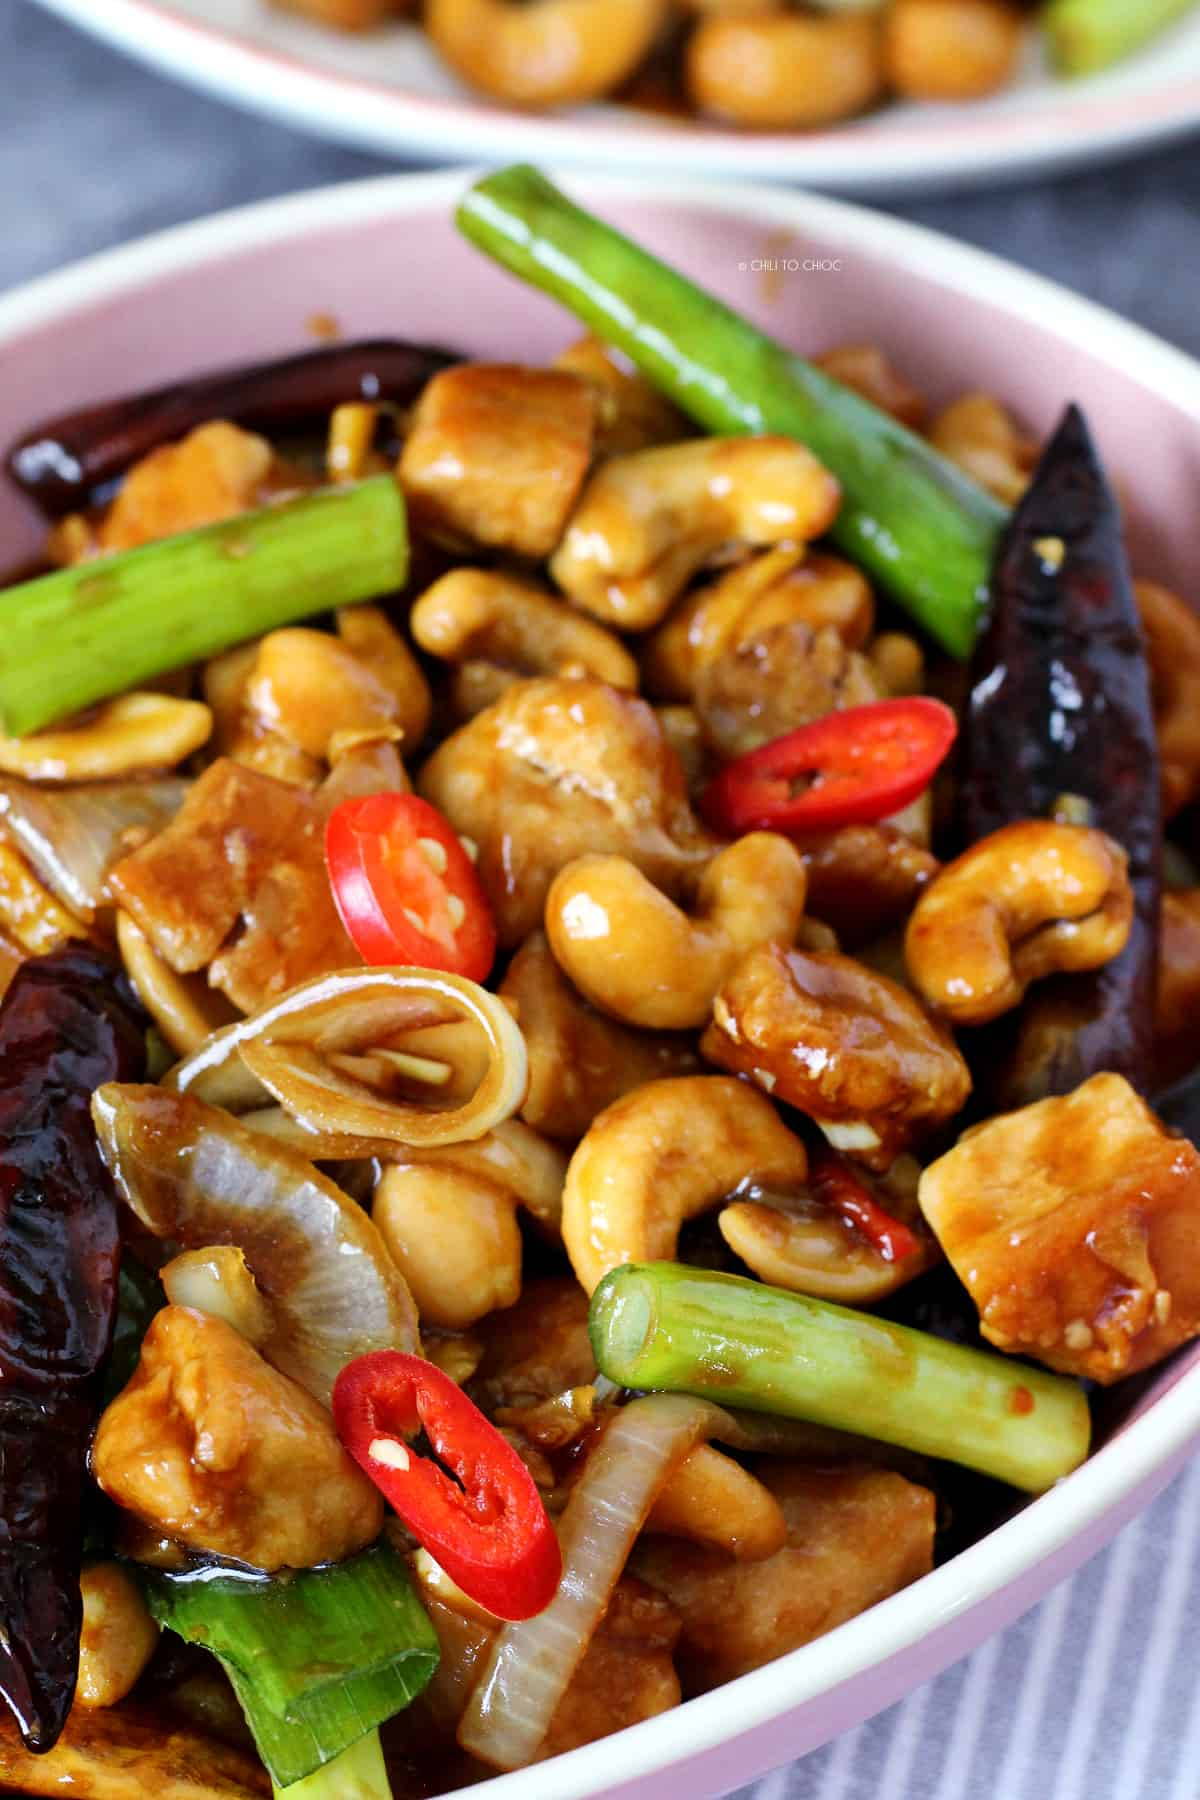 Chicken with cashews, spring onion and chilies